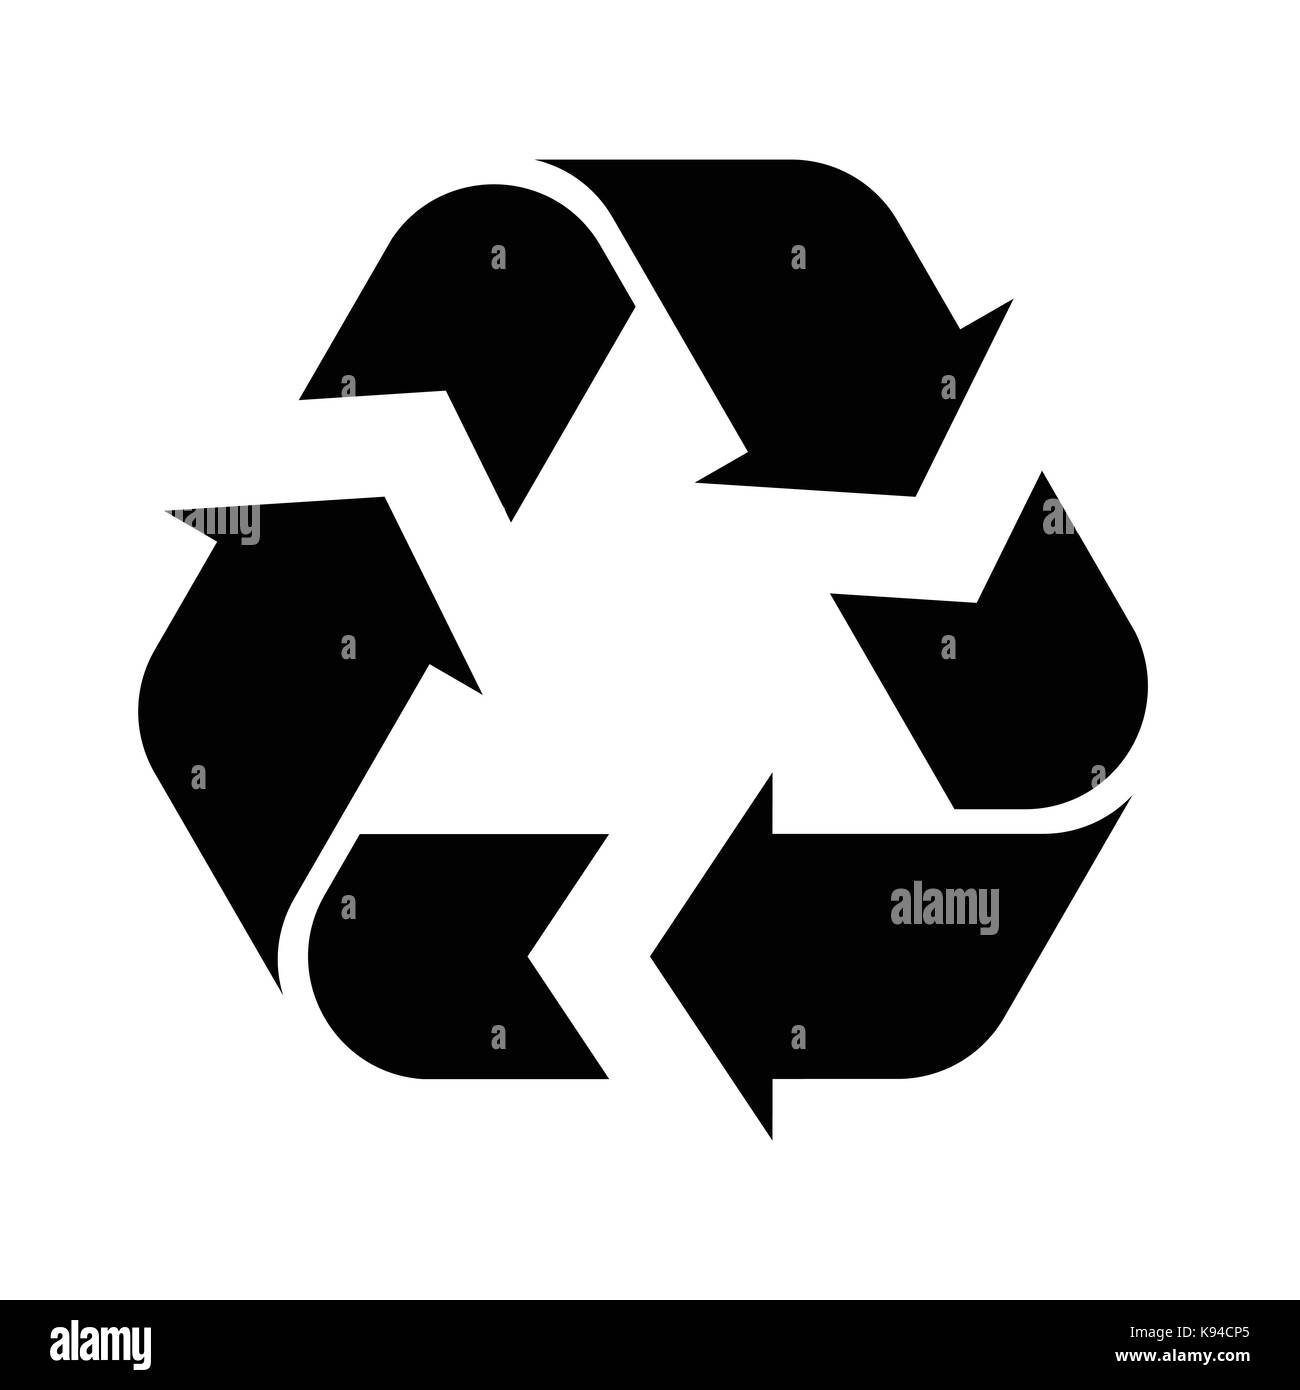 Recycle symbol black and white stock photos images alamy recycle symbol illustration isolated on a white background stock image buycottarizona Image collections